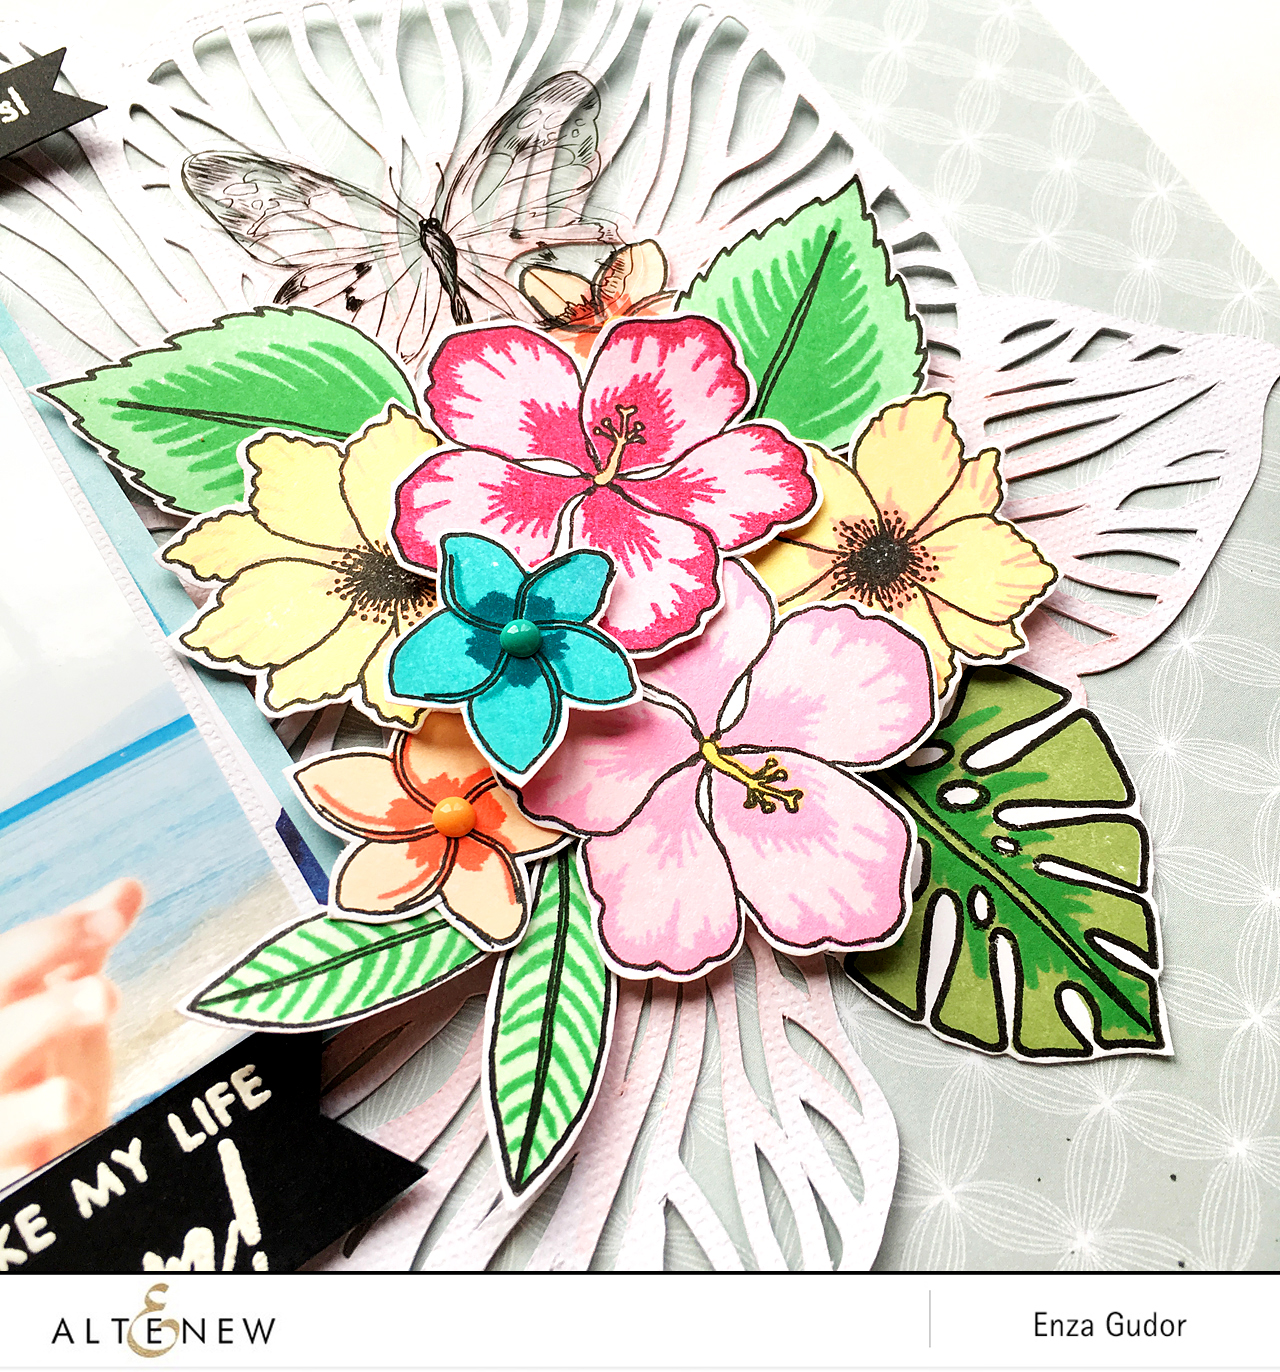 Tropical layout by @enzamg for @Altenew using the Totally Tropical and Parrot Paradise Stamp Sets. #Altenew #stamping #scrapbooking #tropical #flowers